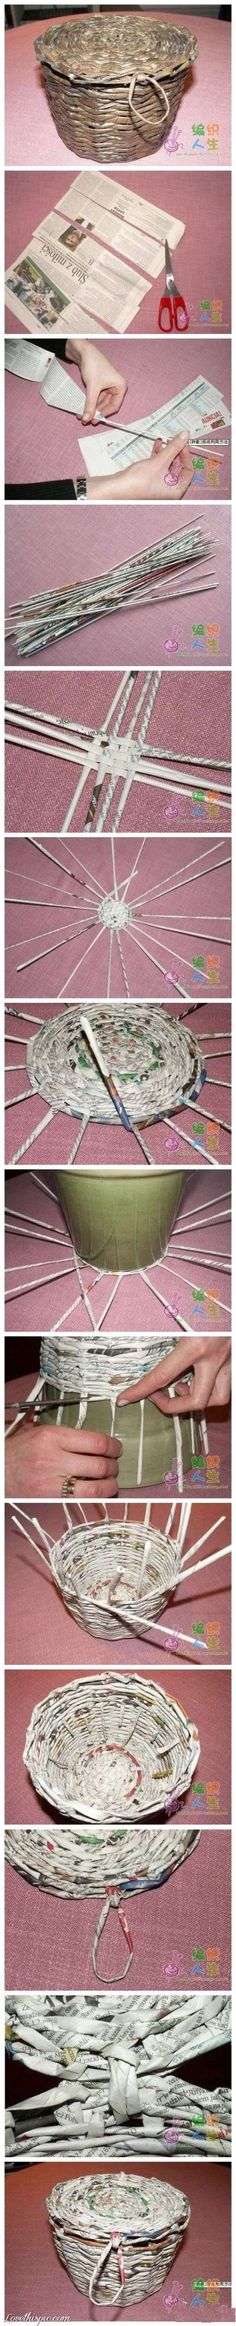 DIY Newspaper Basket basket diy crafts home made easy crafts craft idea crafts ideas diy ideas diy crafts diy idea do it yourself diy projects diy craft handmade